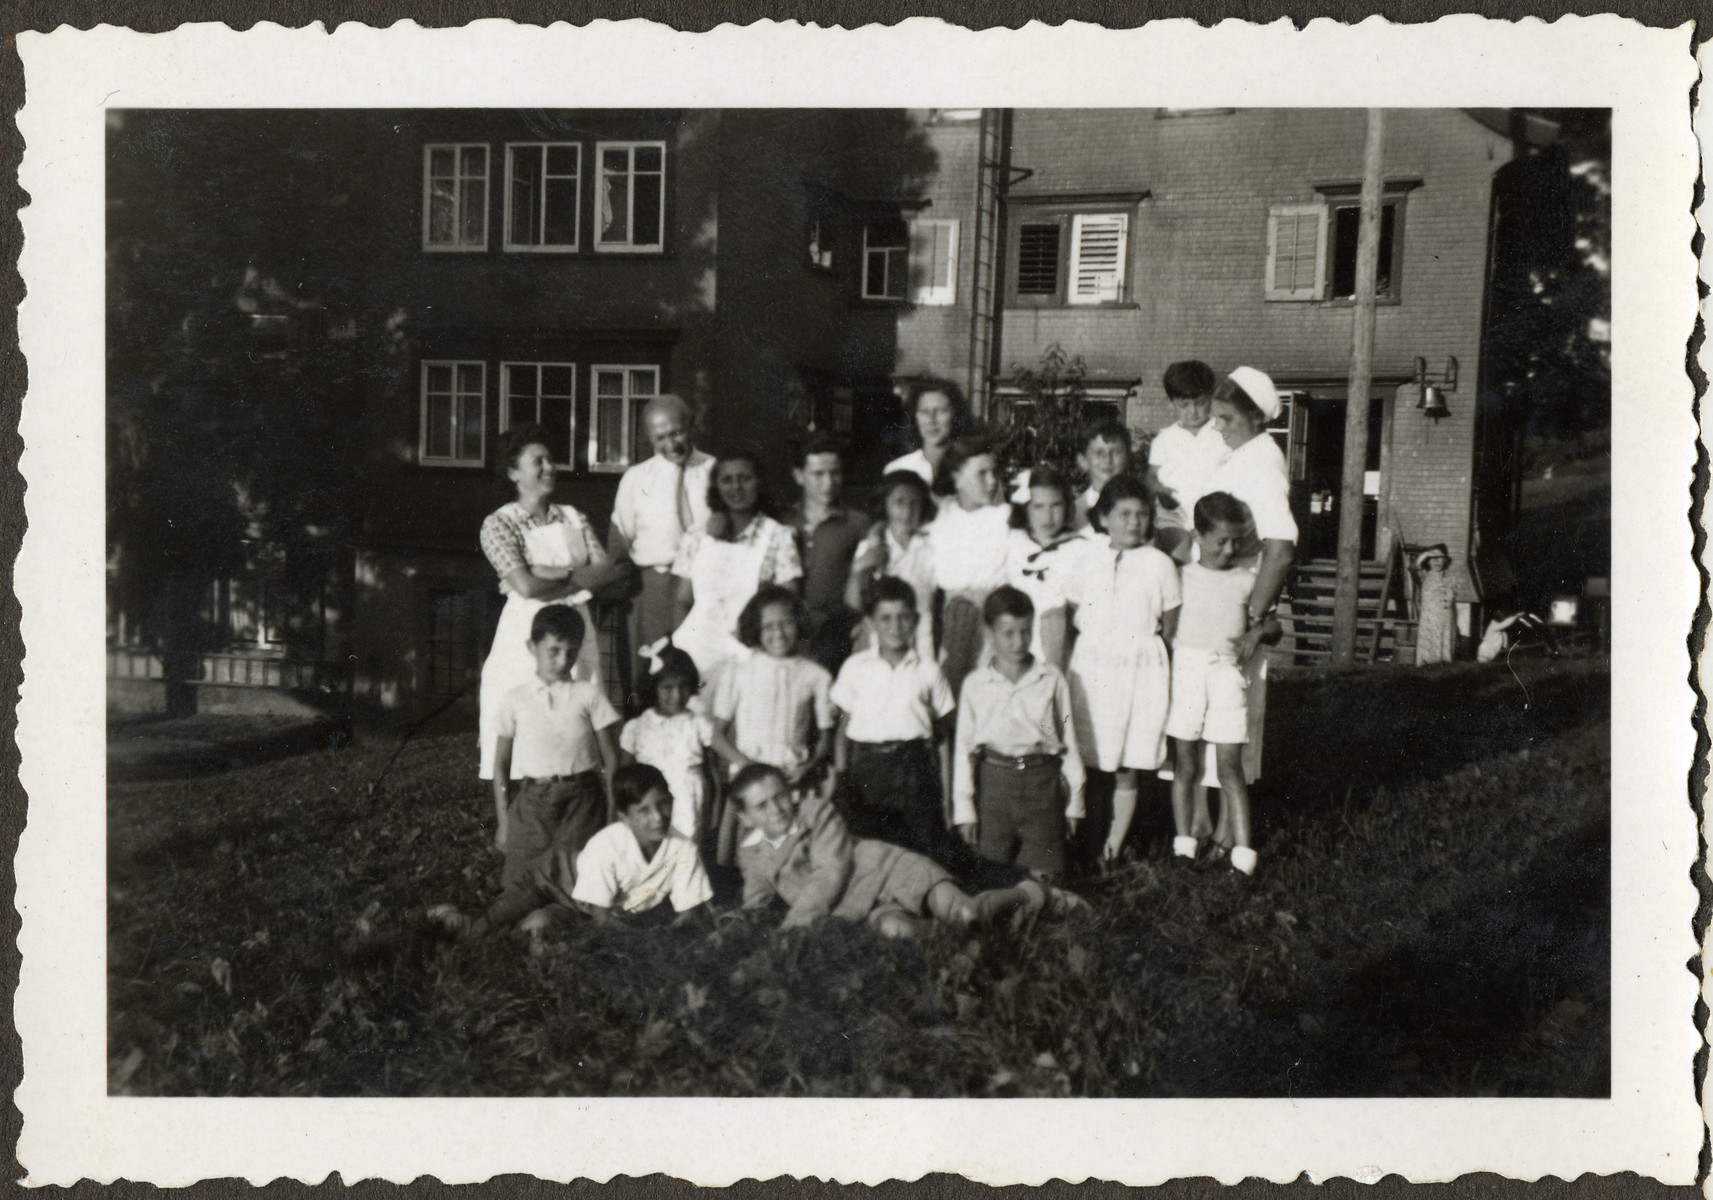 Group portrait of children and staff posing on the grounds of the Heiden children's home in Switzerland.  All of the children had been on the Kasztner Transport from Bergen-Belsen.  Manny Mandel is pictured on the bottom left.  His mother, Ella Mandel, in standing in the back row, center.  The director of the home is standing in the back left.  The boy in the arms of the nurse (right) is Ivan Fleishmann.